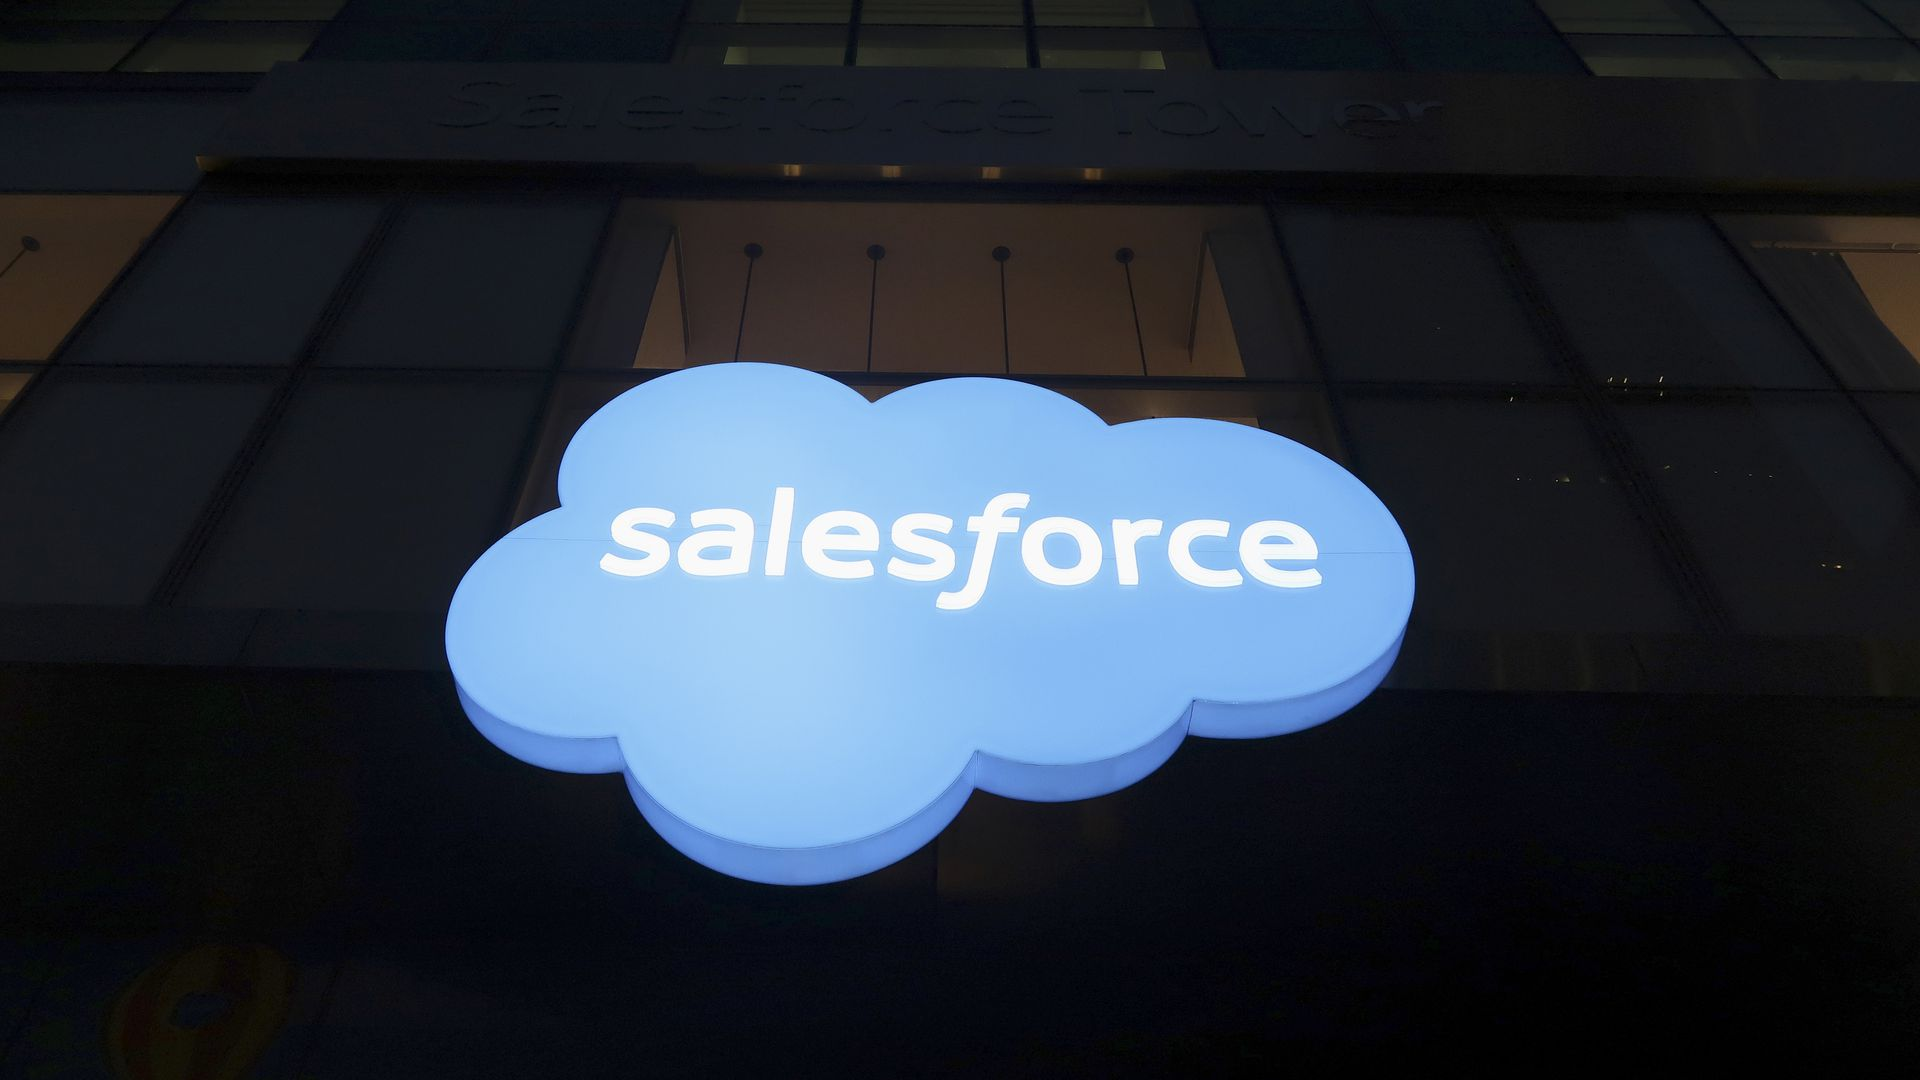 Photo of Salesforce logo on side of a dark building